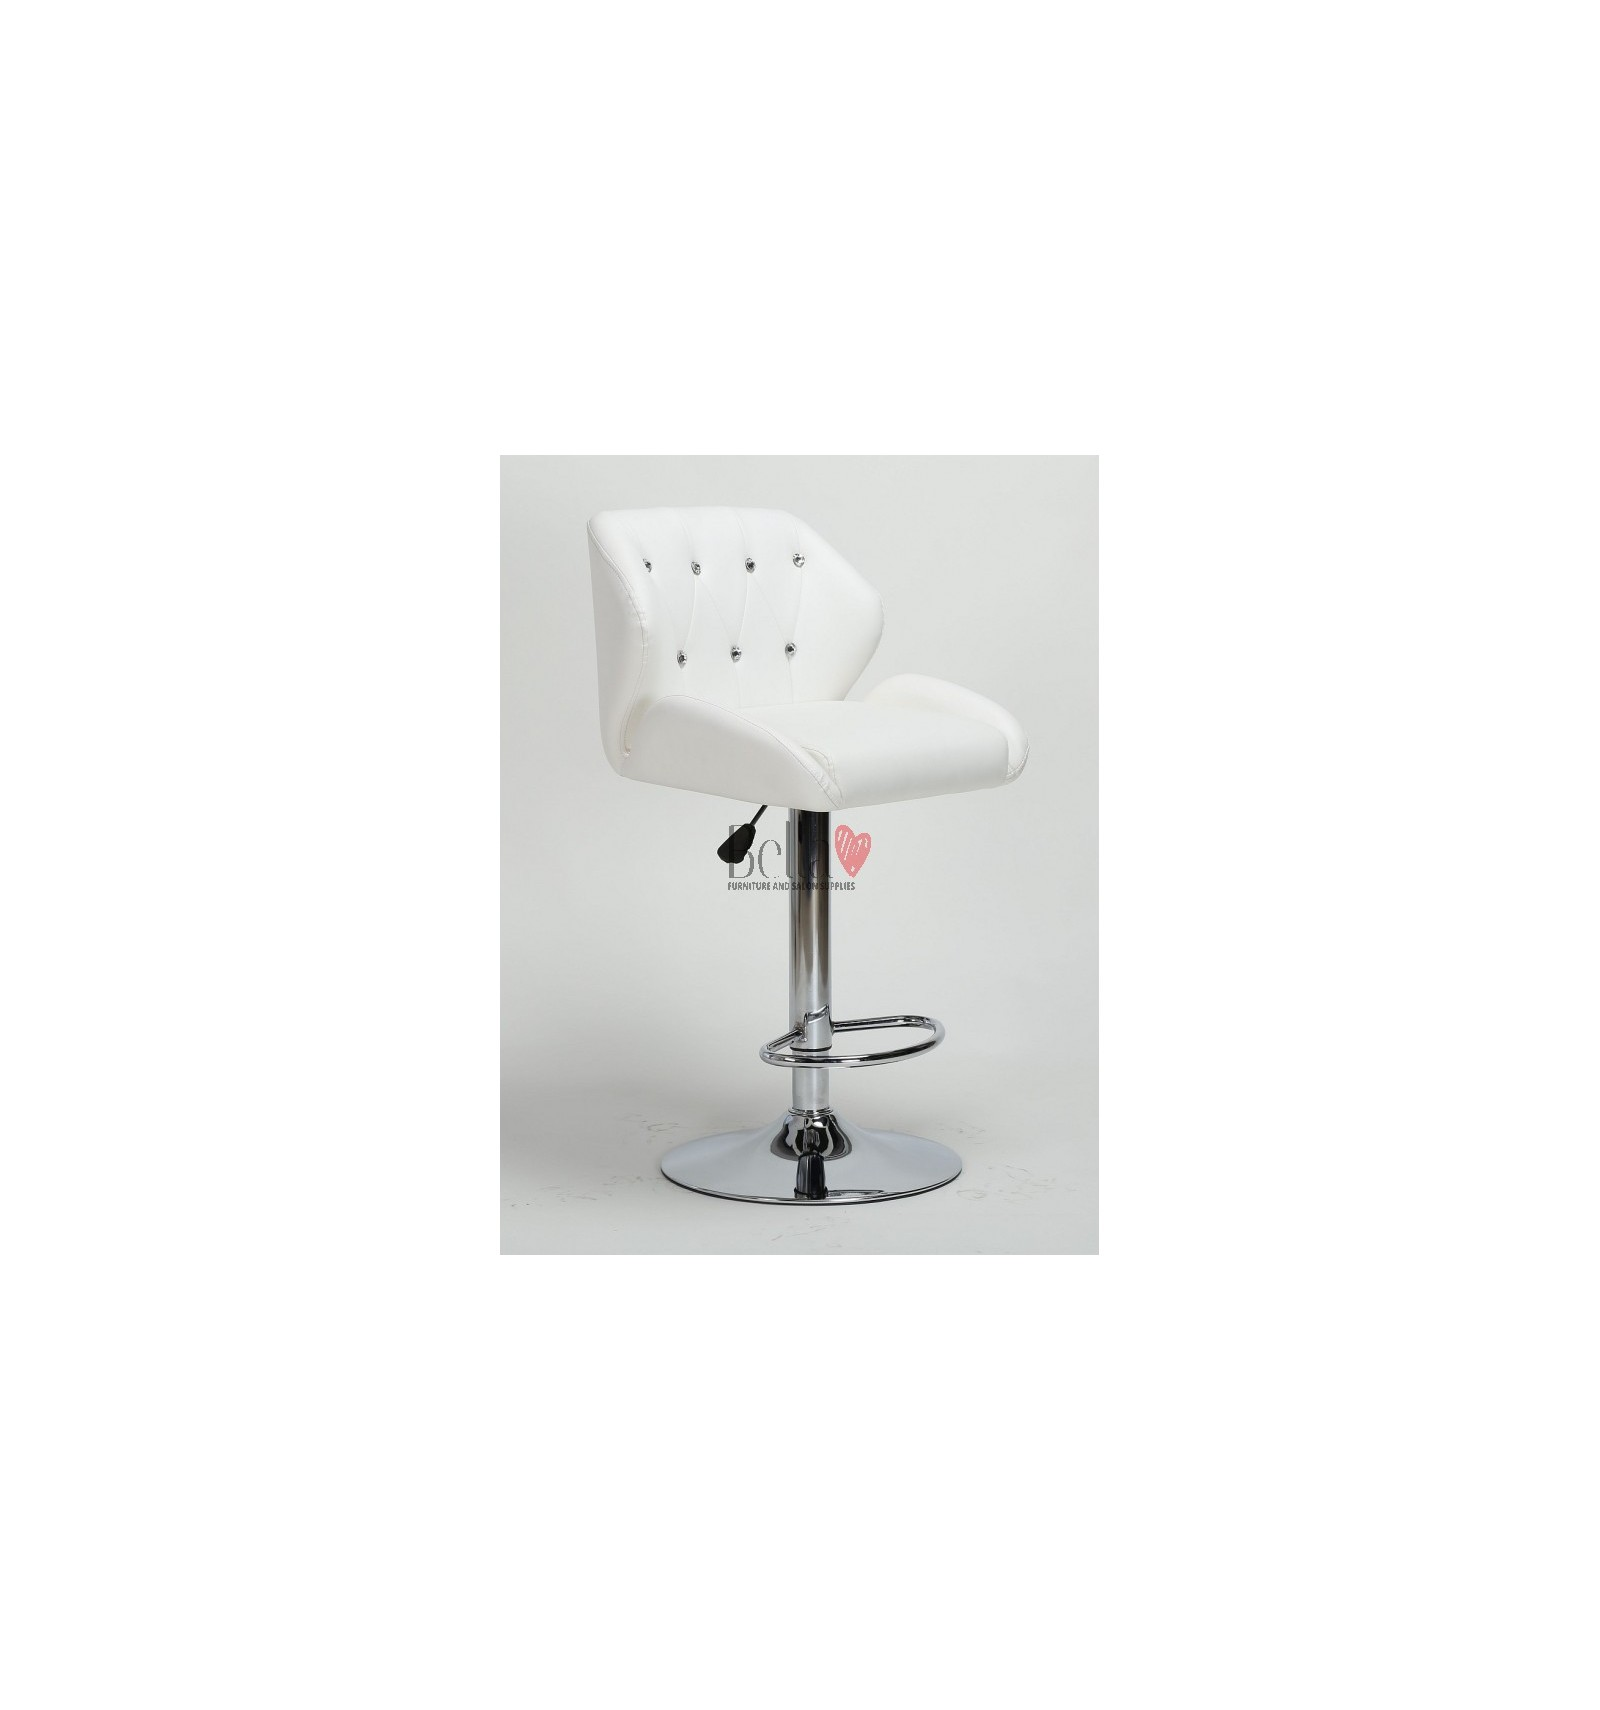 Fabulous Makeup and reception high chairs for sale. High makeup chairs Ireland. CL07